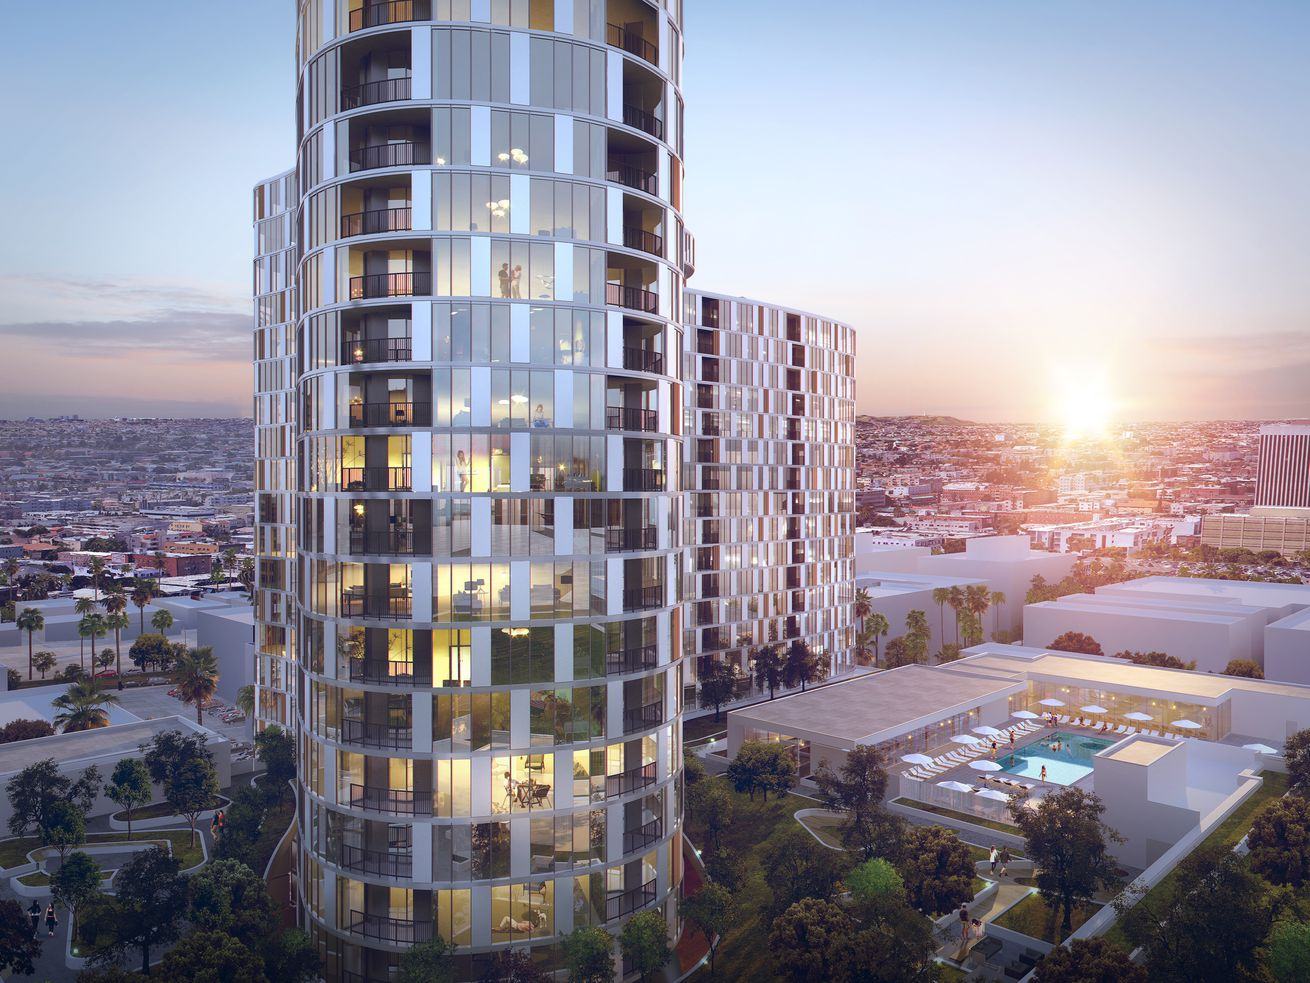 The tower, designed by Large Architecture, will sit atop a podium at 2900 Wilshire Boulevard.